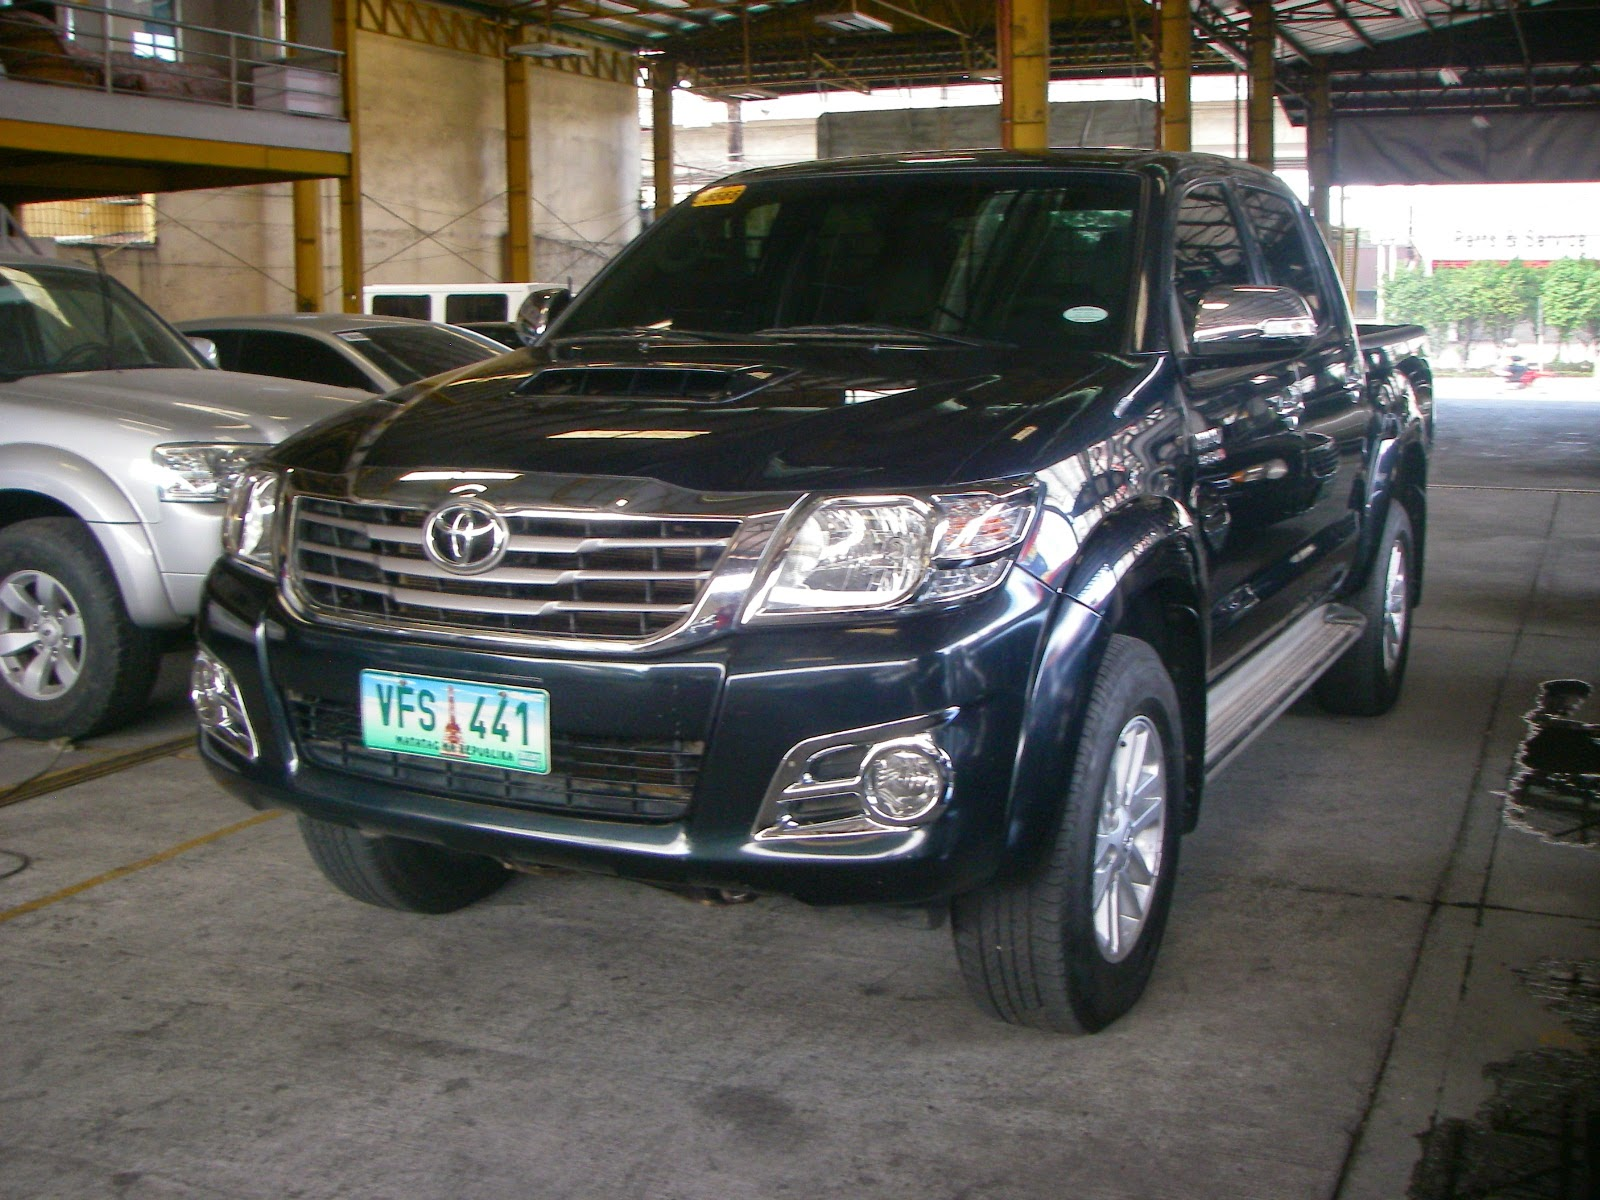 Old Cars For Sale In Philippines: Cars For Sale In The Philippines